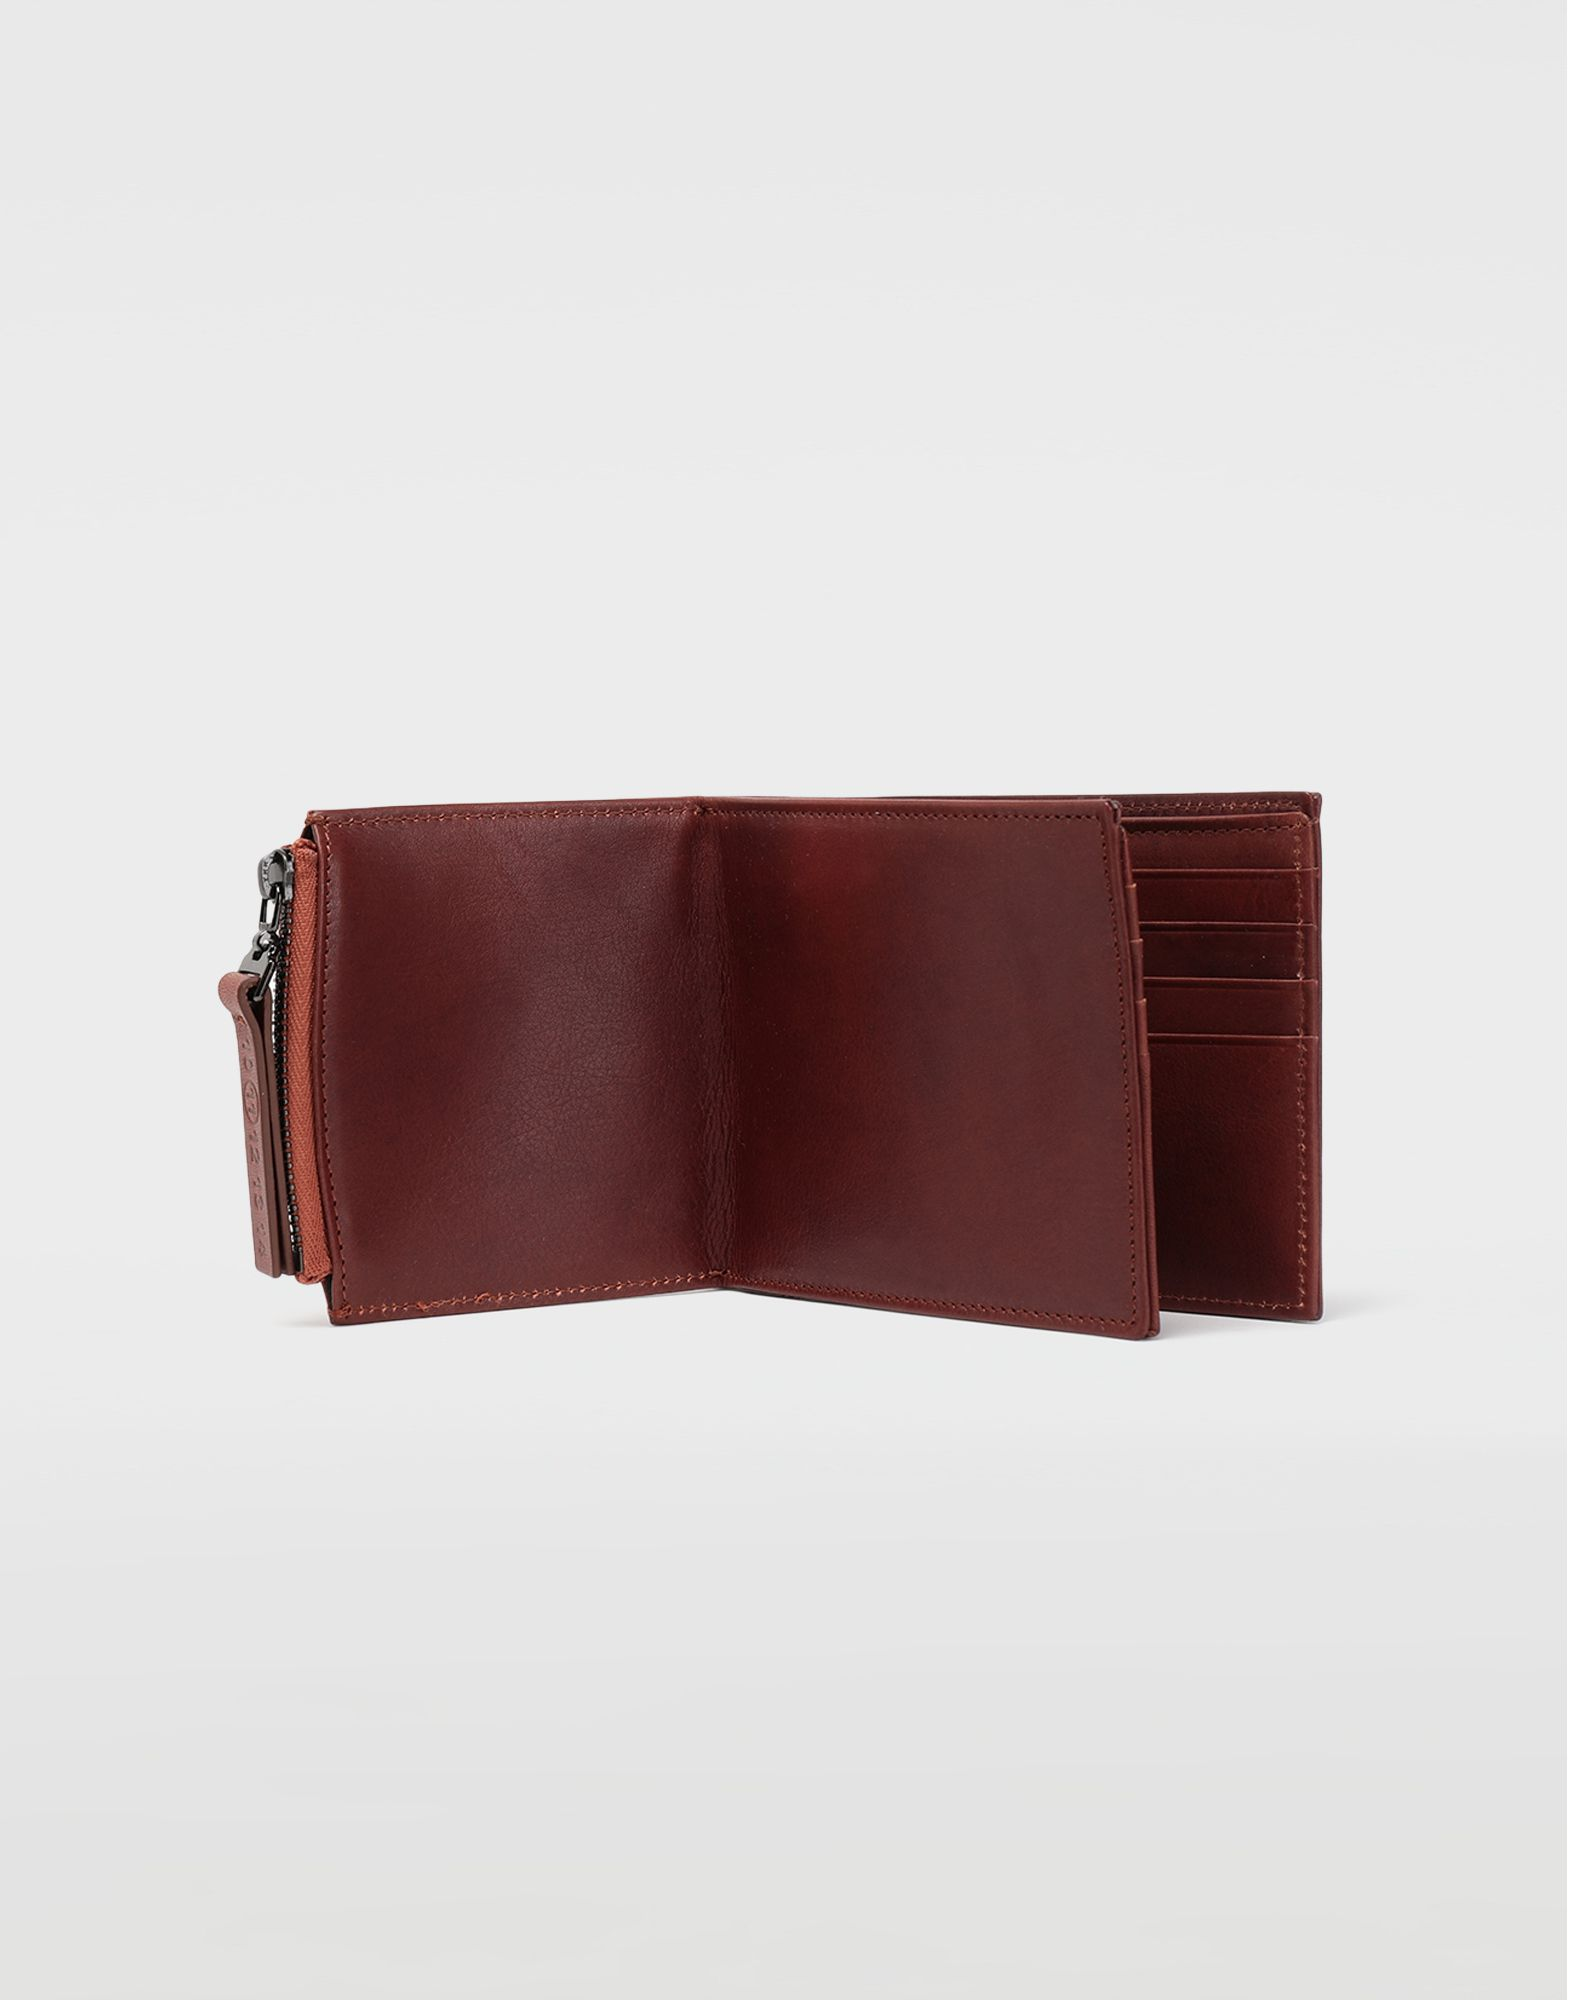 MAISON MARGIELA Folded leather wallet Wallets Man a